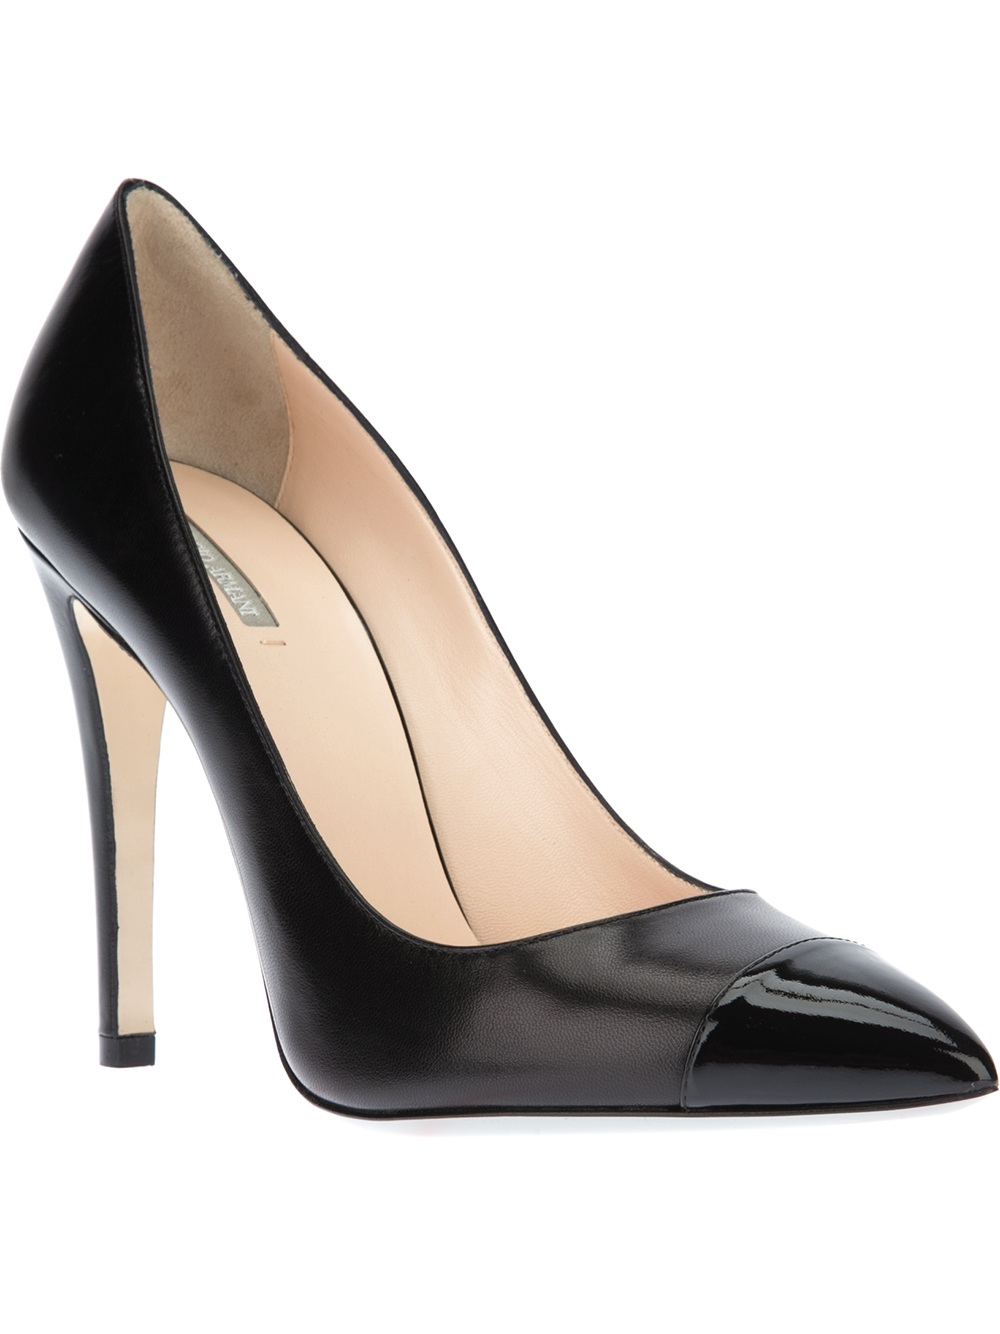 6deb70141ed3 Lyst - Giorgio Armani Pointed Toe Pump in Black